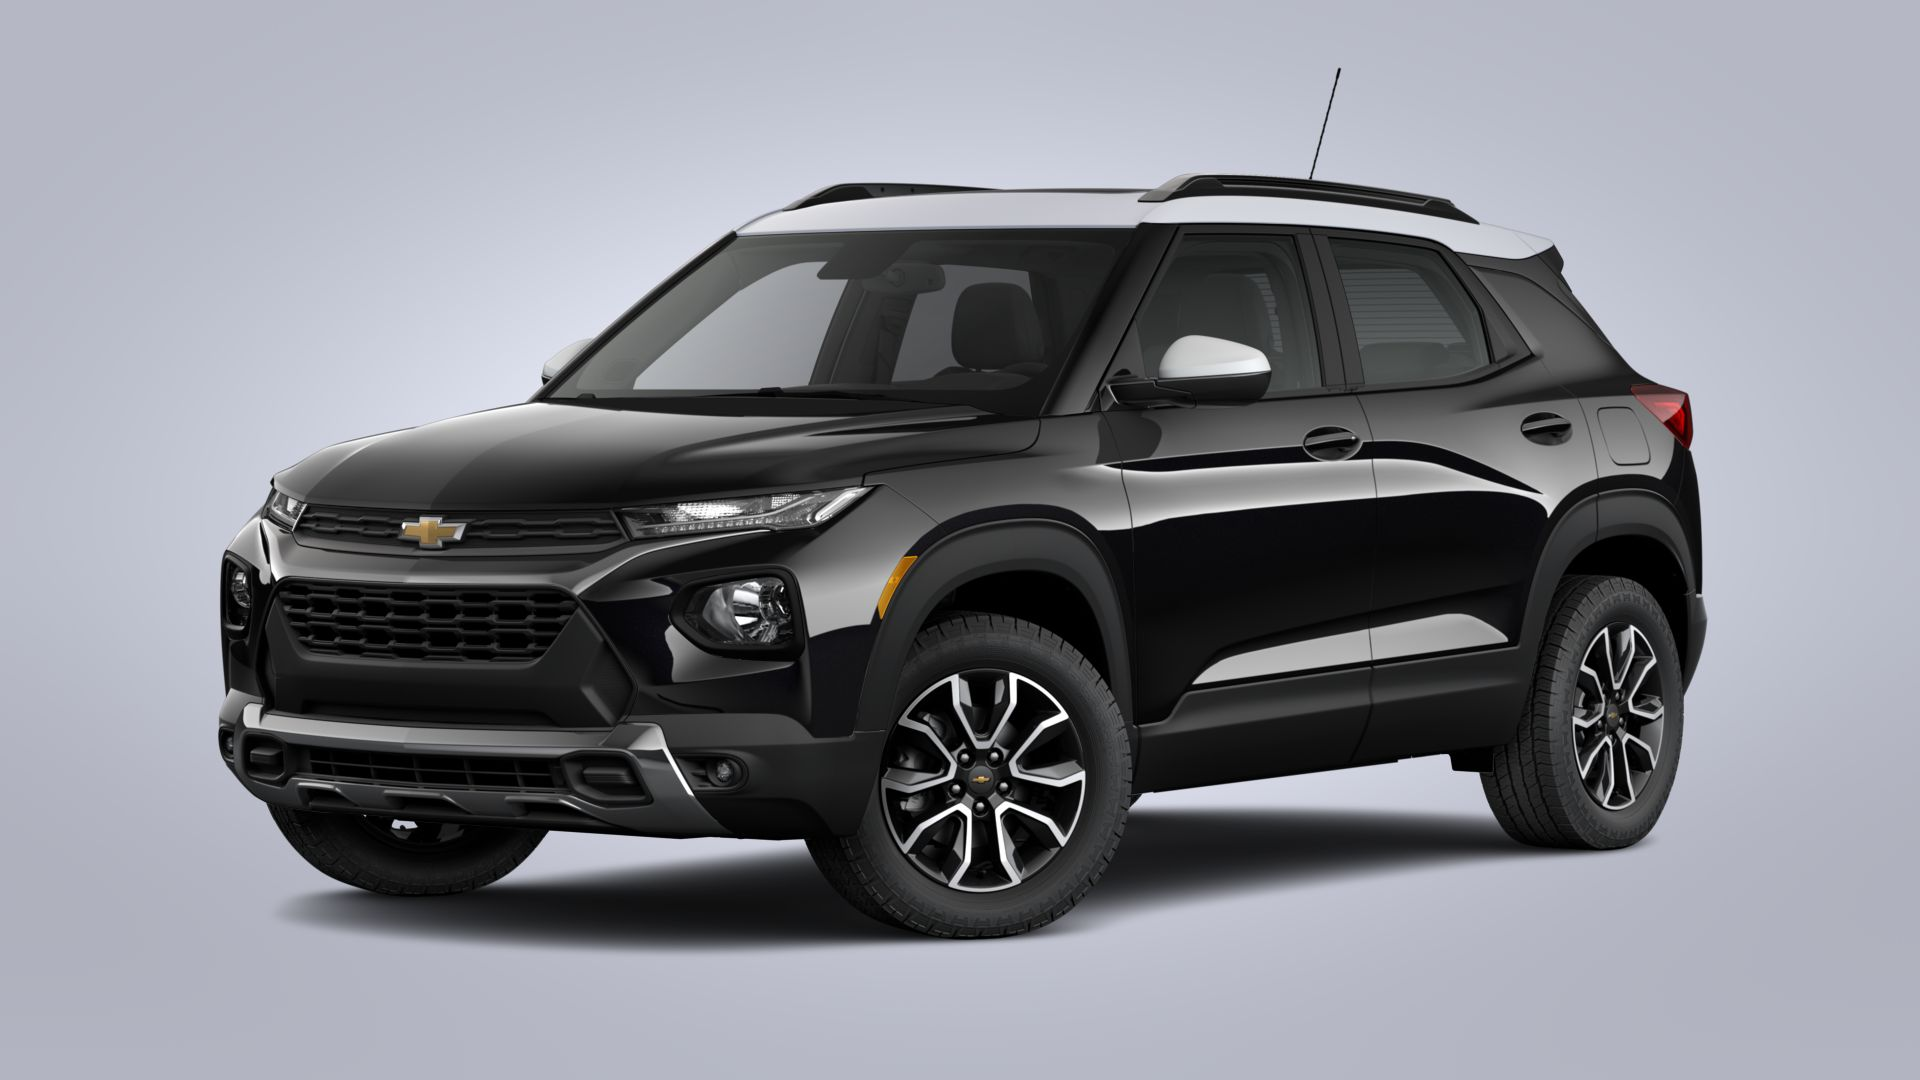 New 2021 Chevrolet Trailblazer ACTIV ALL WHEEL DRIVE SUV